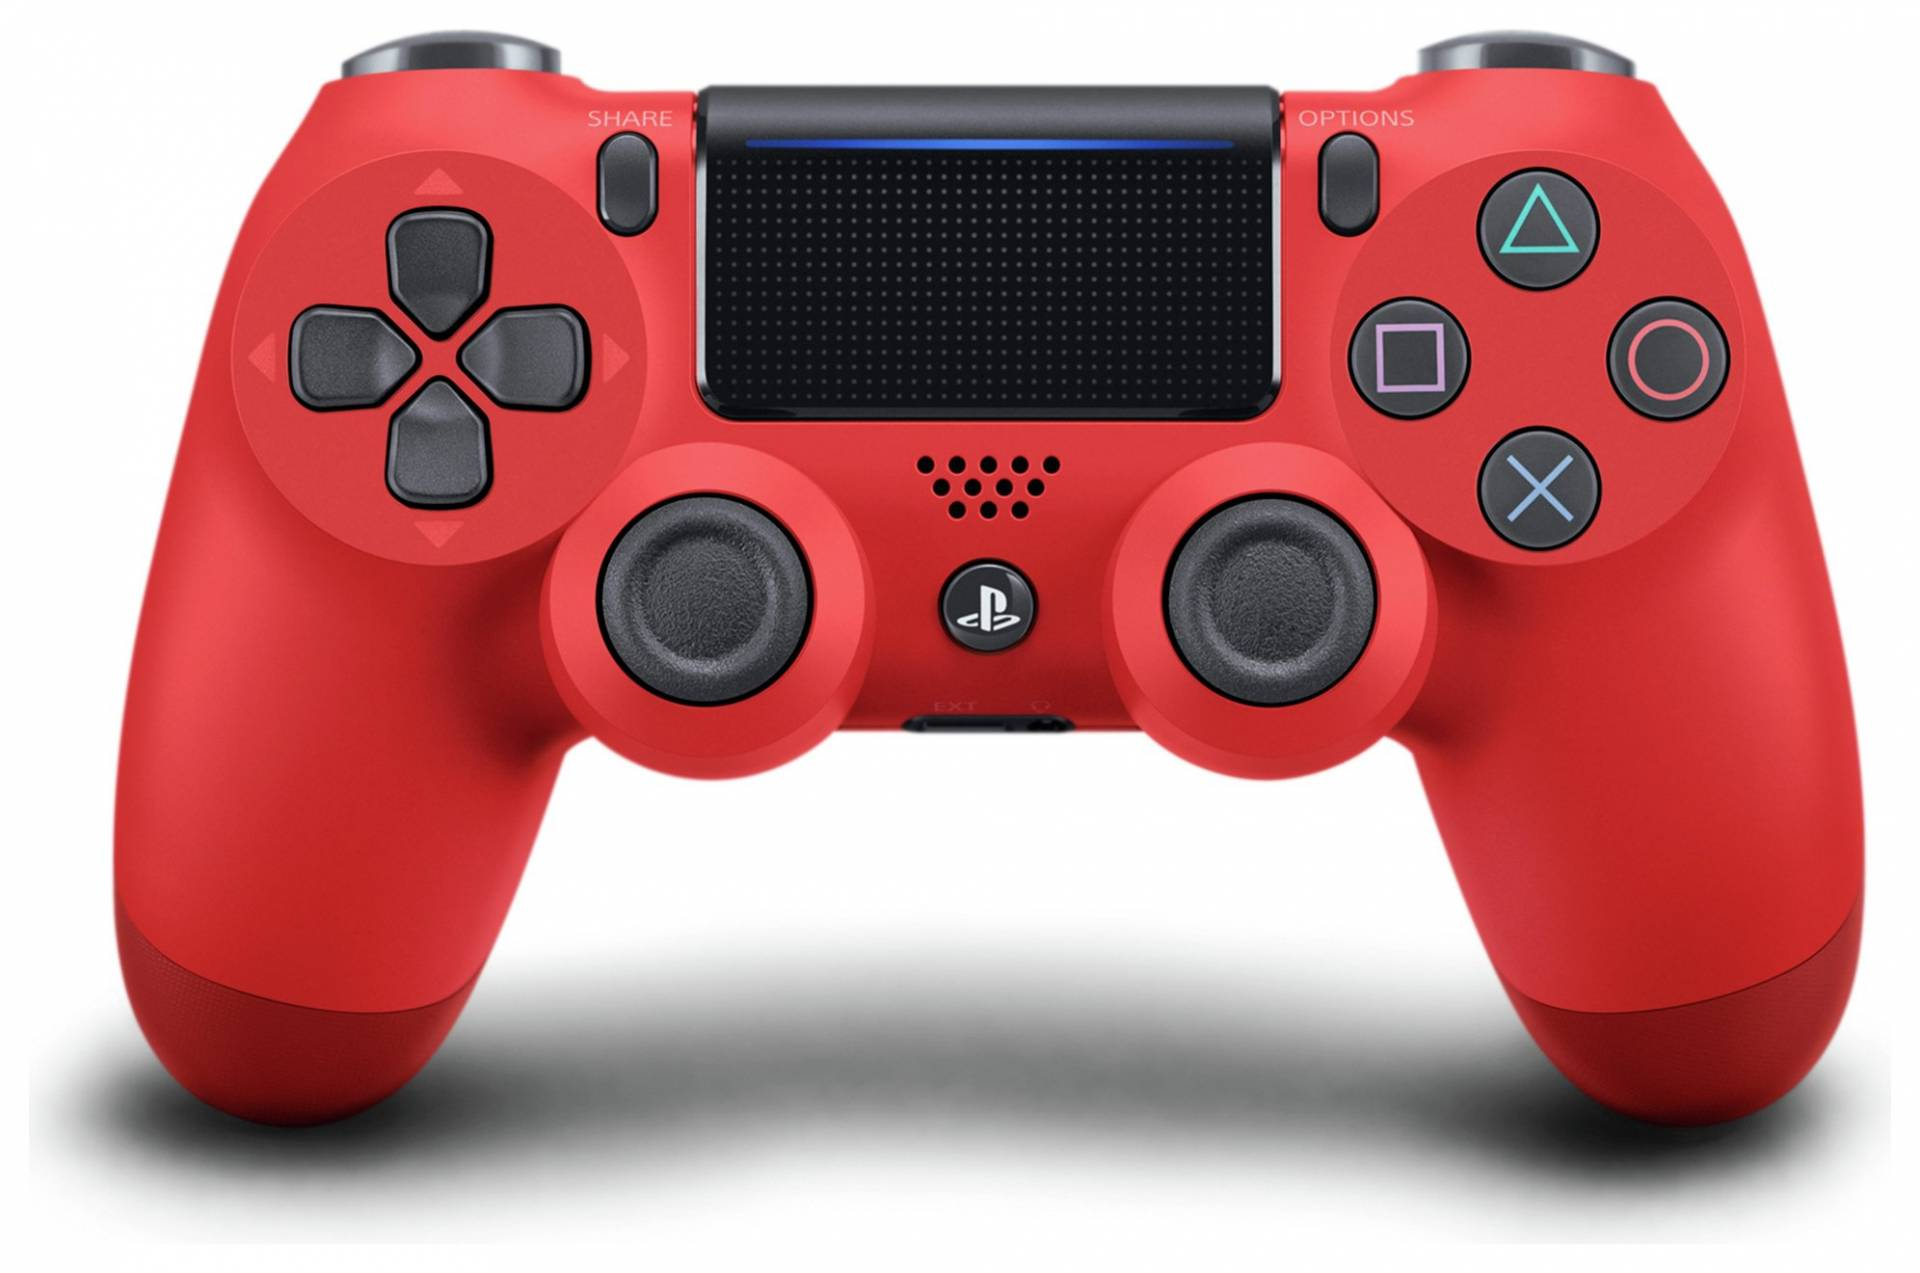 PS4 - DualShock 4 V2 Wireless Controller - Magma Red from Playstation